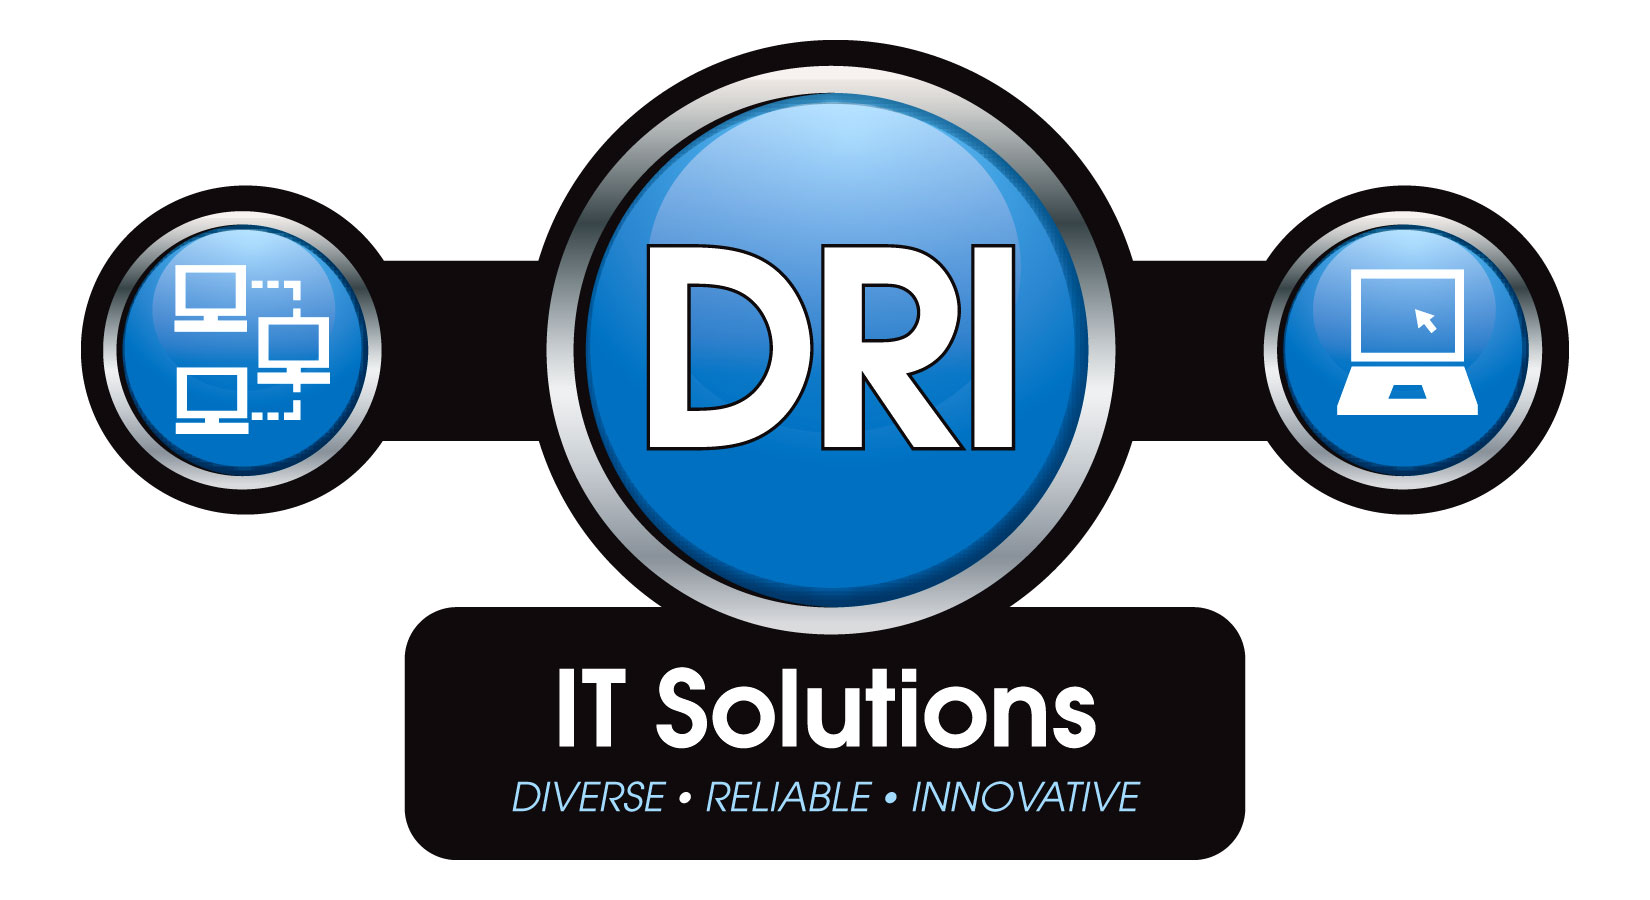 DRI IT Solutions